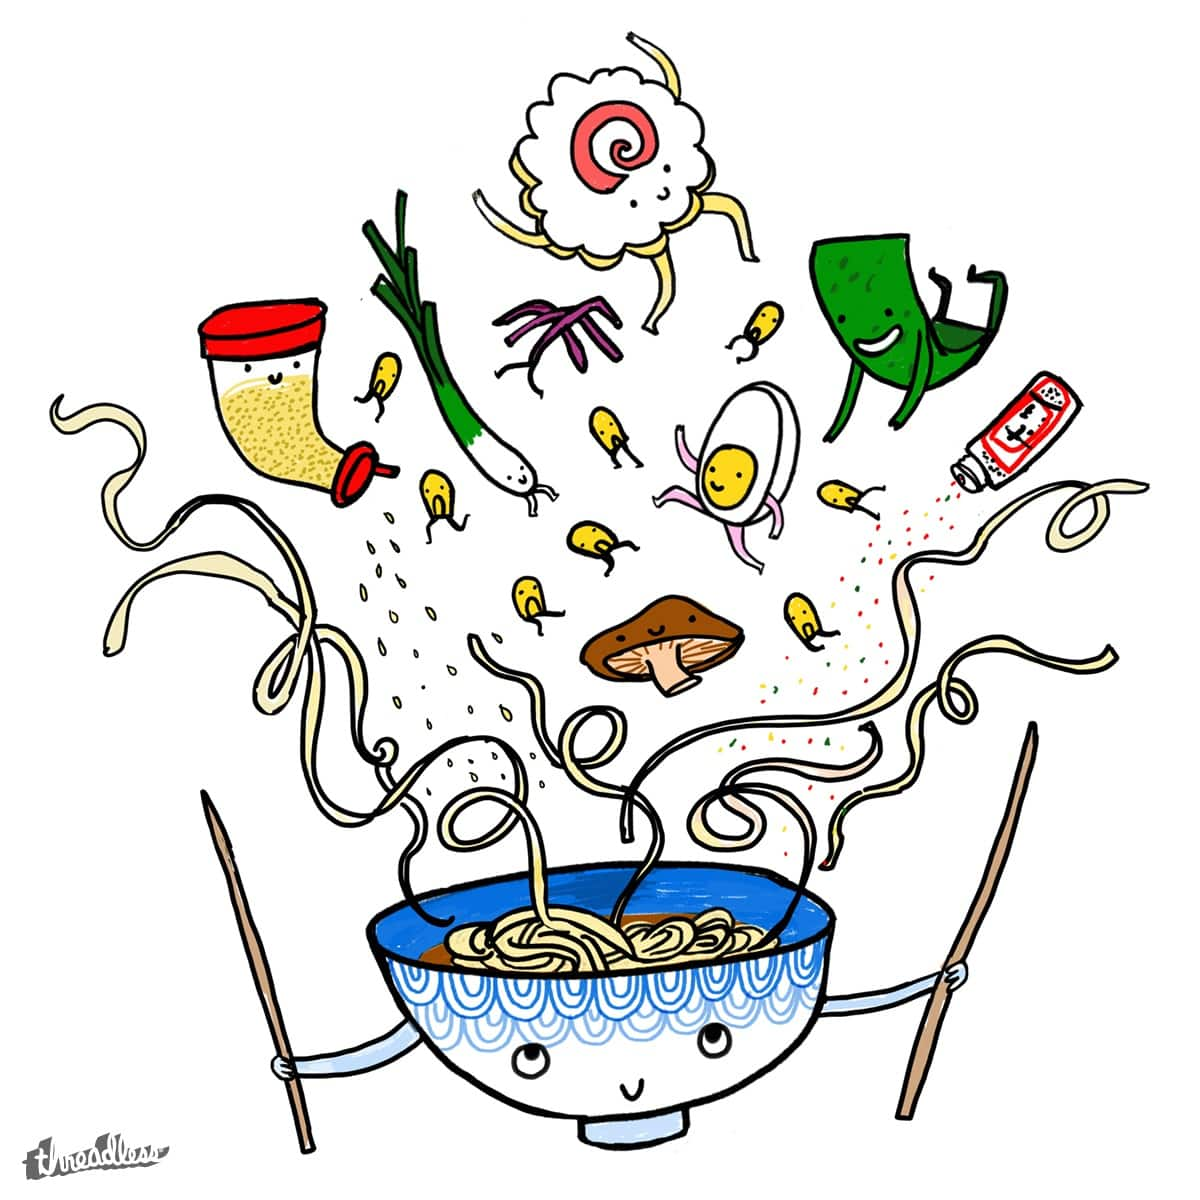 Ramen Party!!! by drawdrawdraw on Threadless